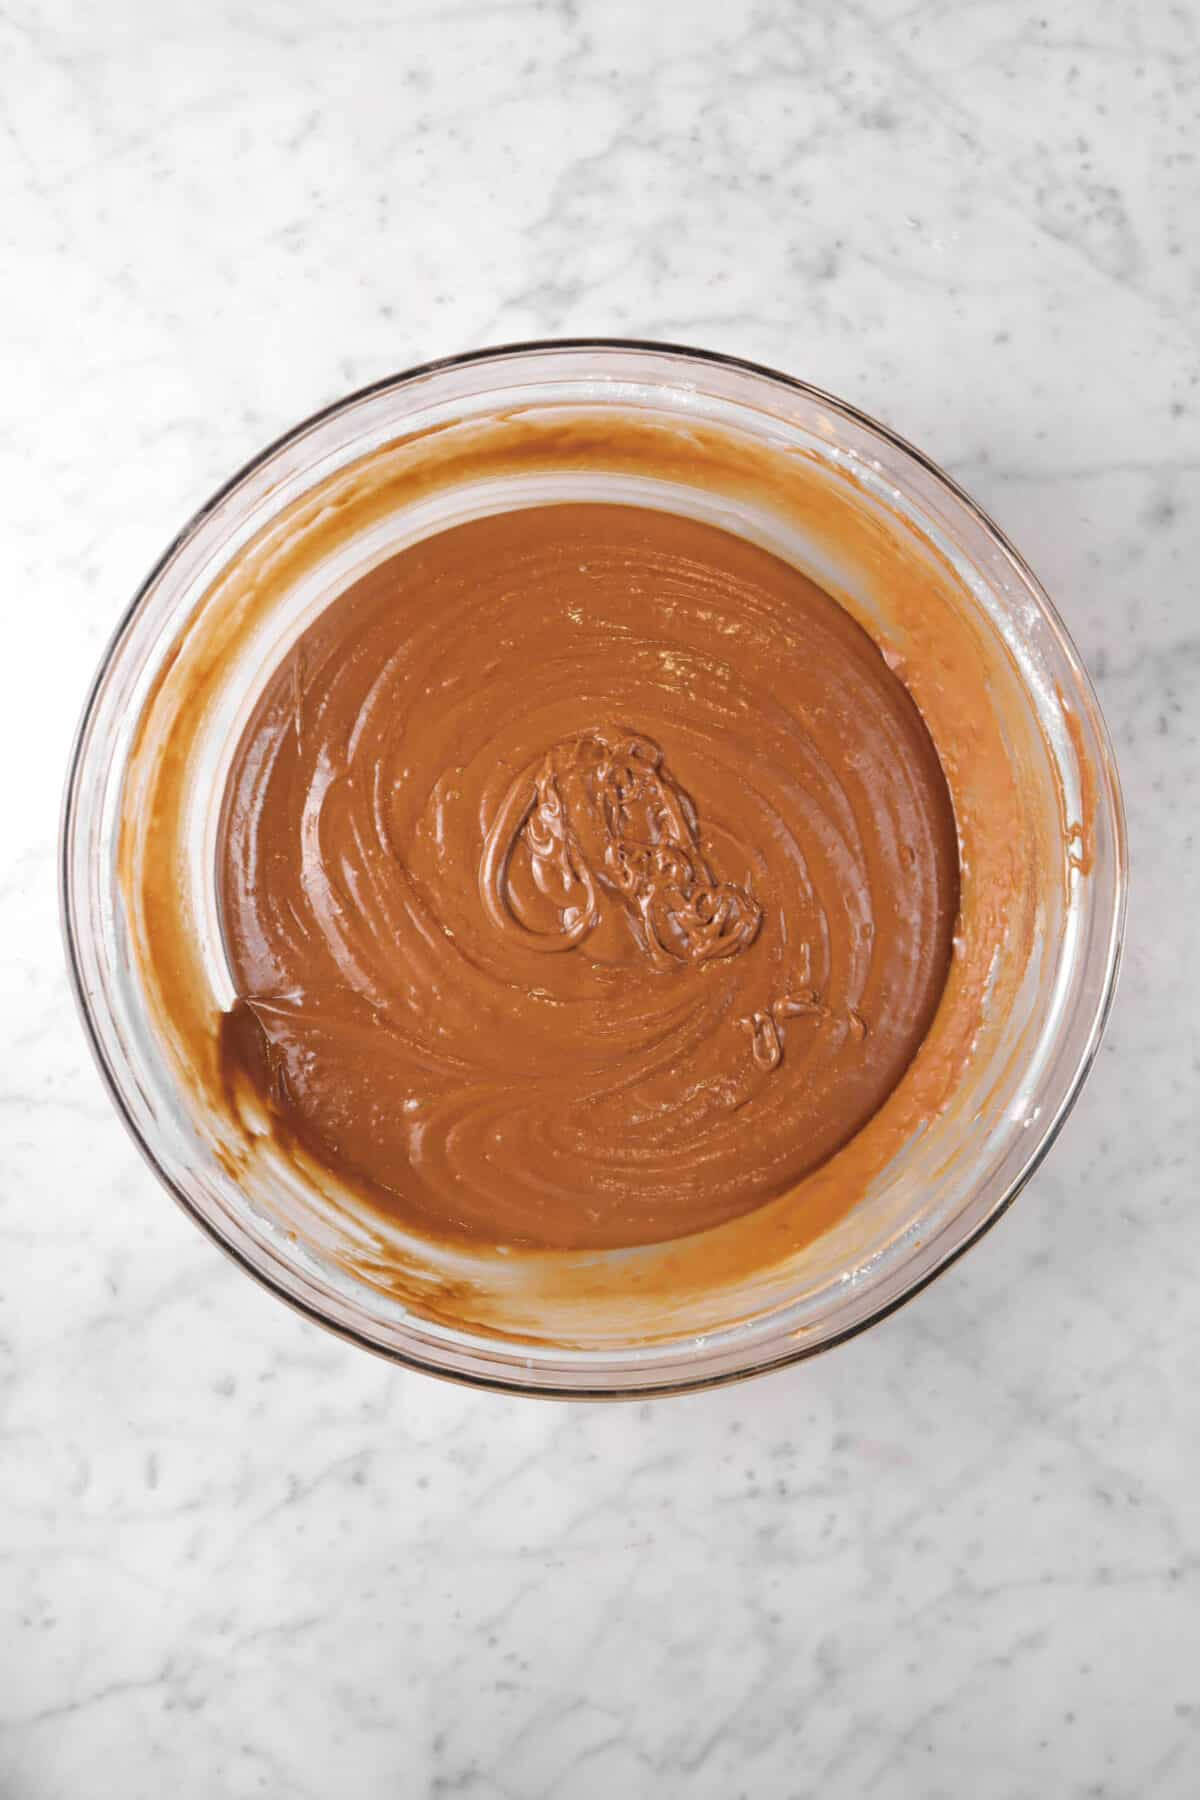 chocolate cupcake batter in a glass bowl on a marble counter